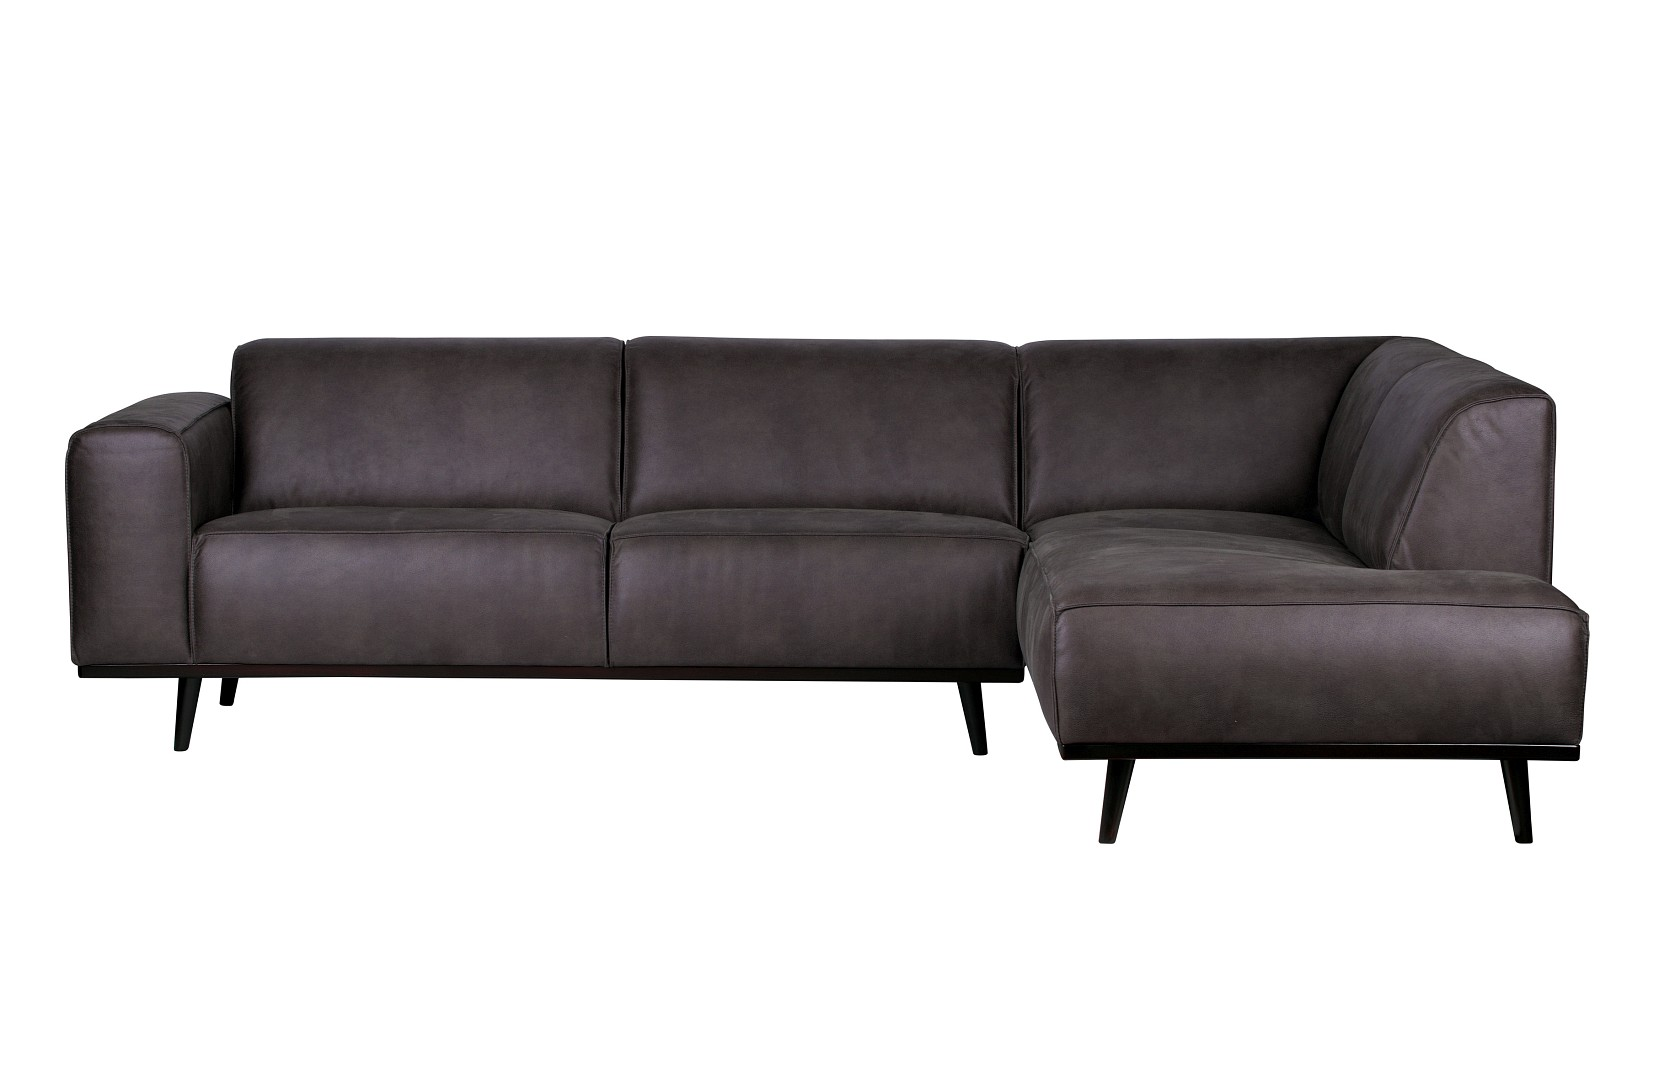 Samtsofa Rodeo Ecksofa Recycle Leder Statement Dunkelgrau Rechts Oder Links 274 X 210